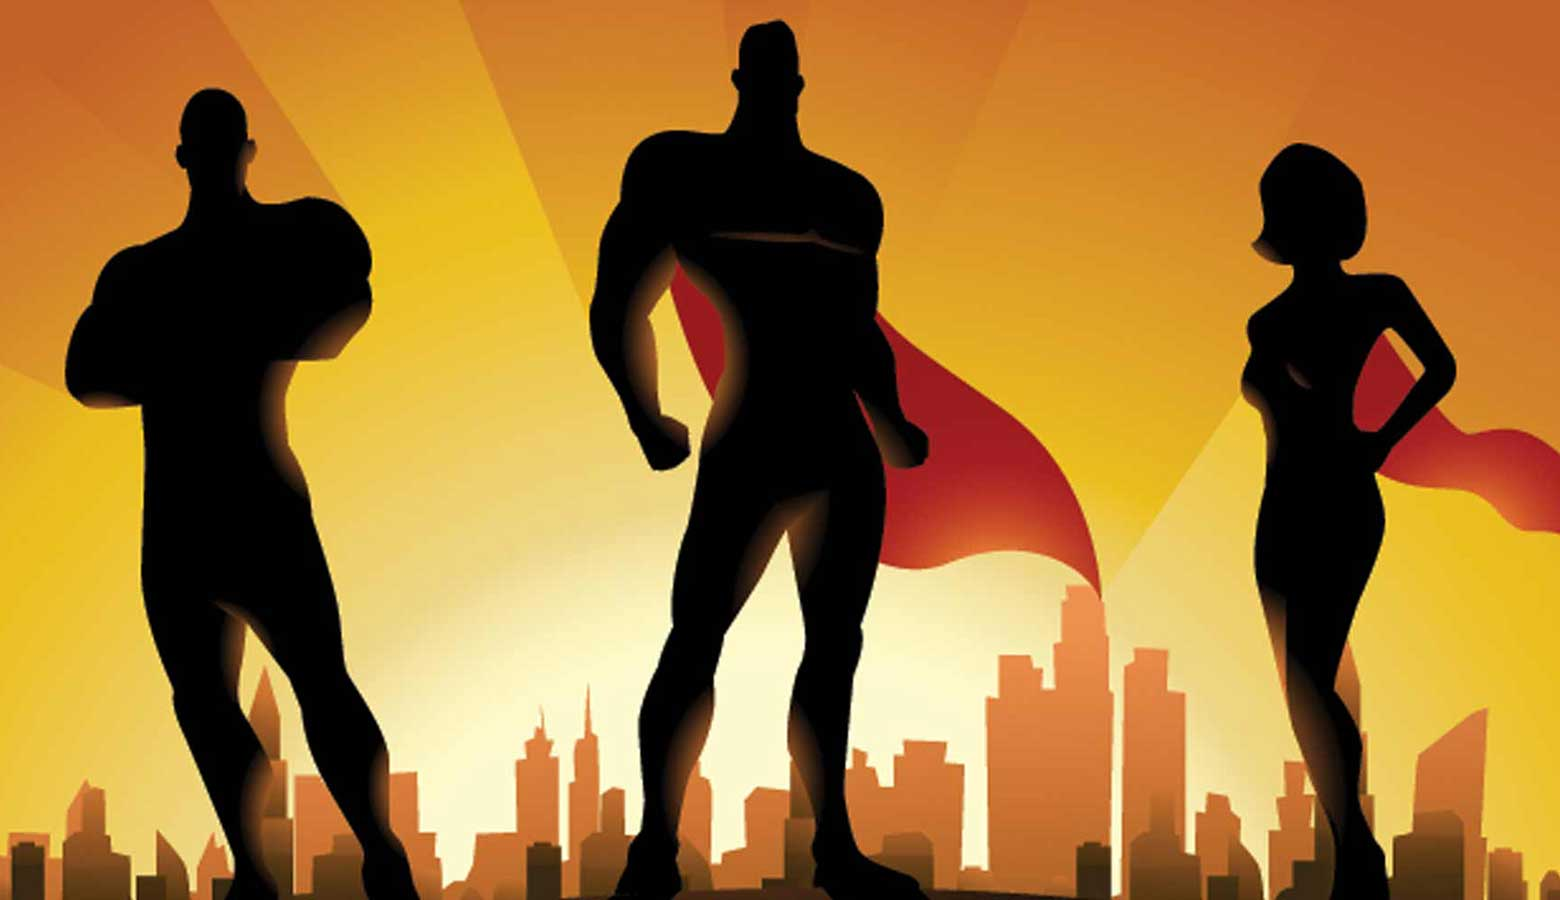 Super heroes in capes used to represent IT super users in business